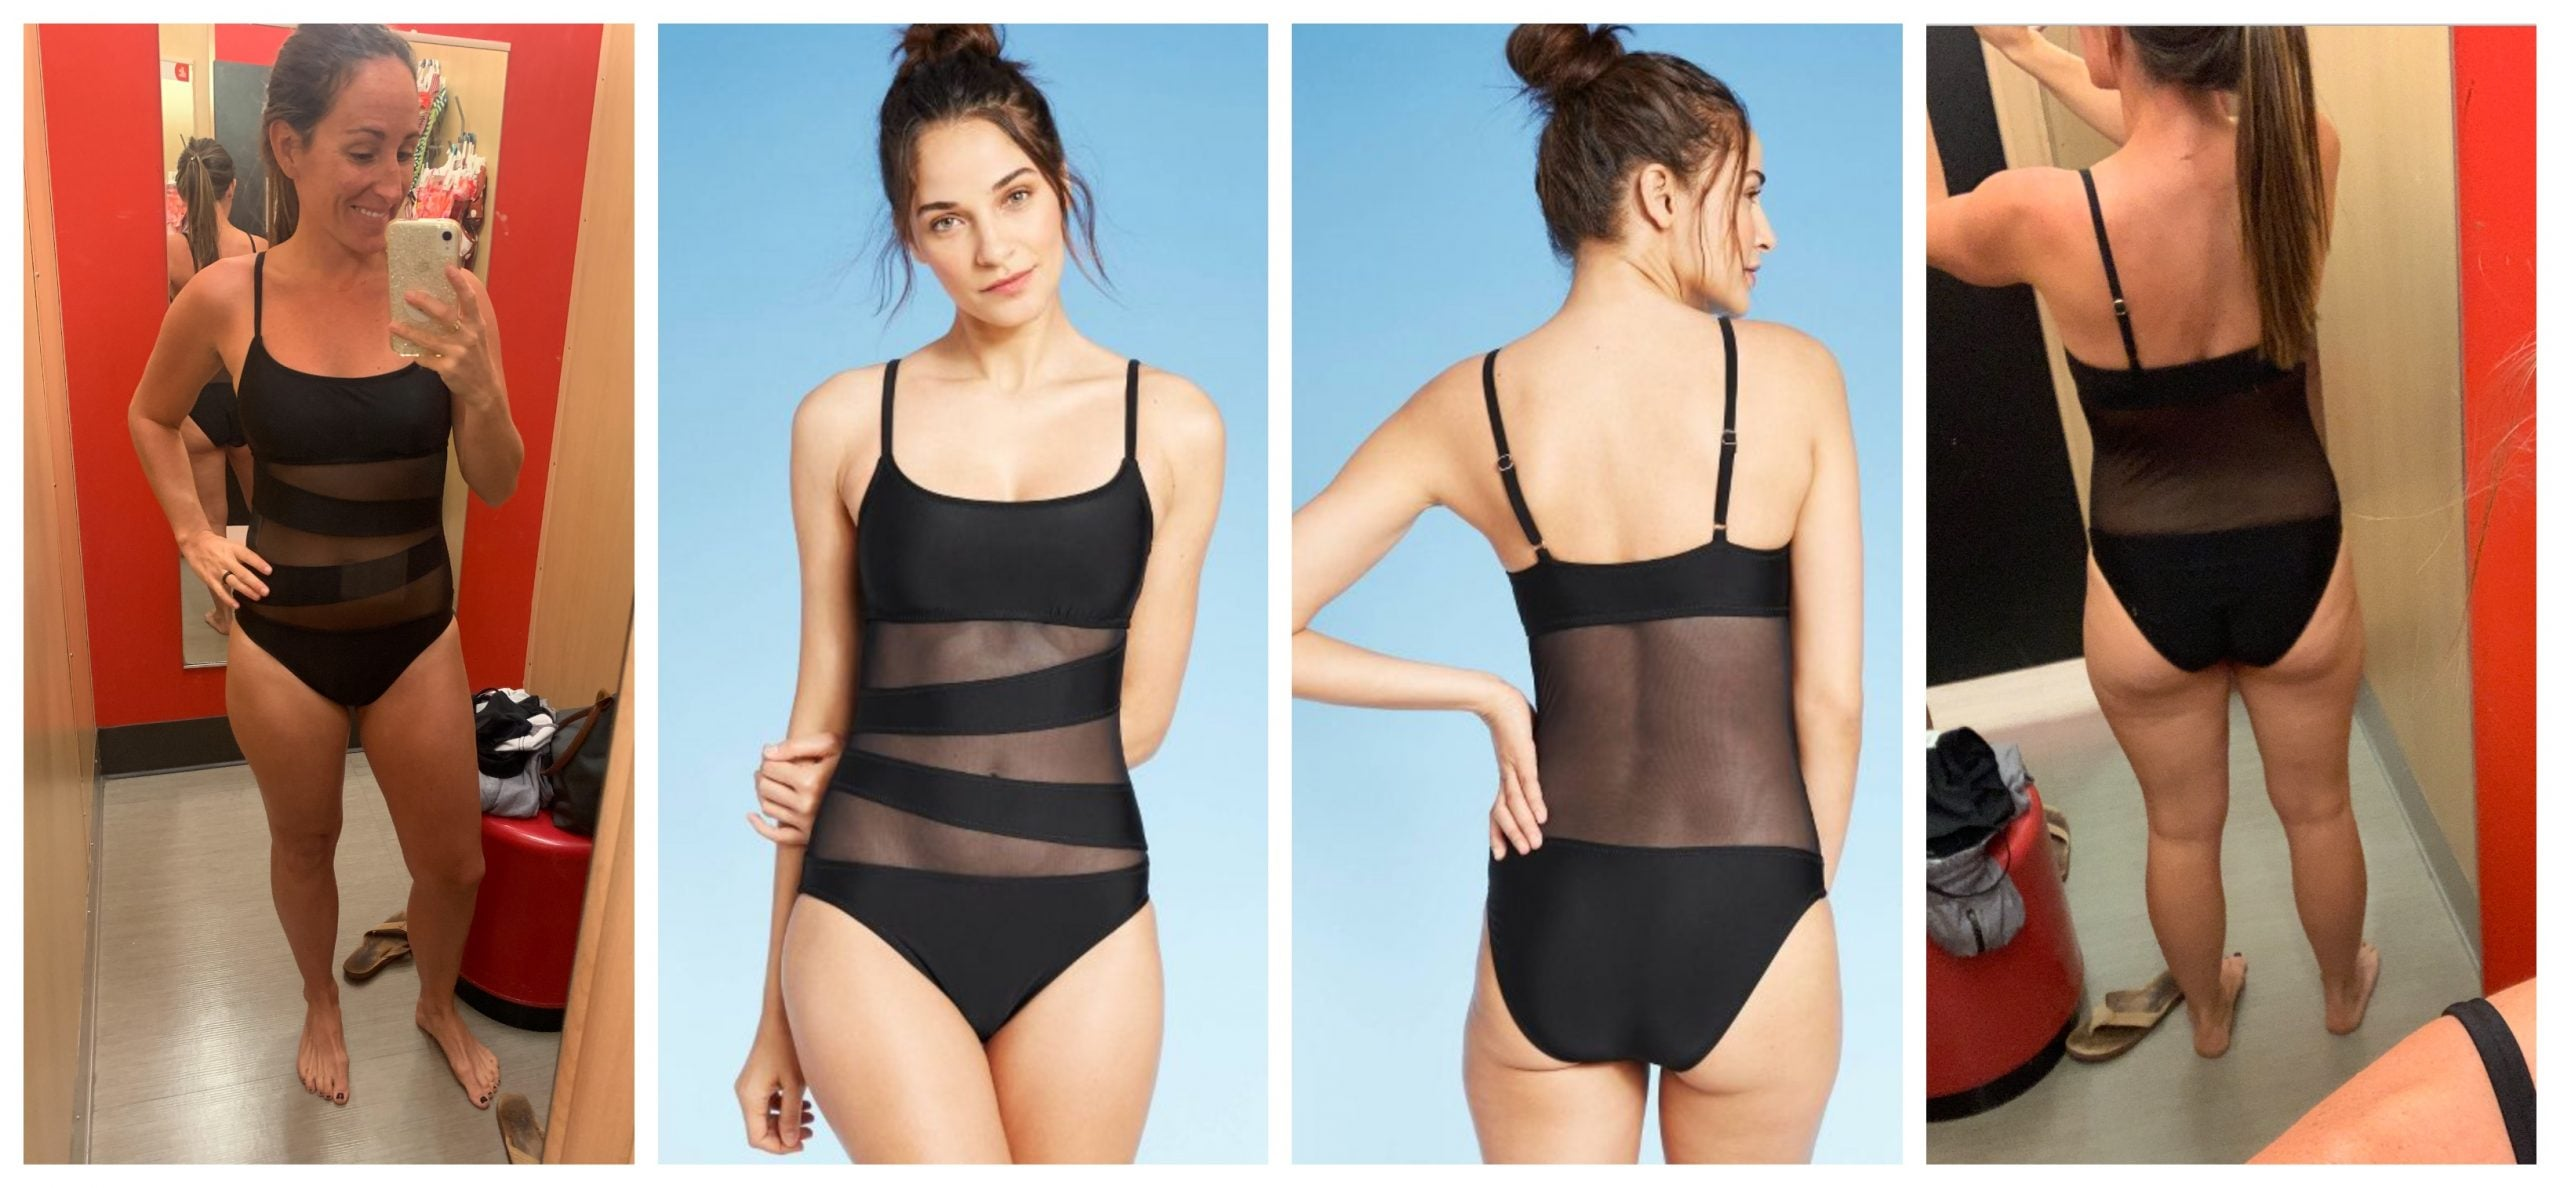 Target One Piece Swimsuit - Black Mesh Cut Out